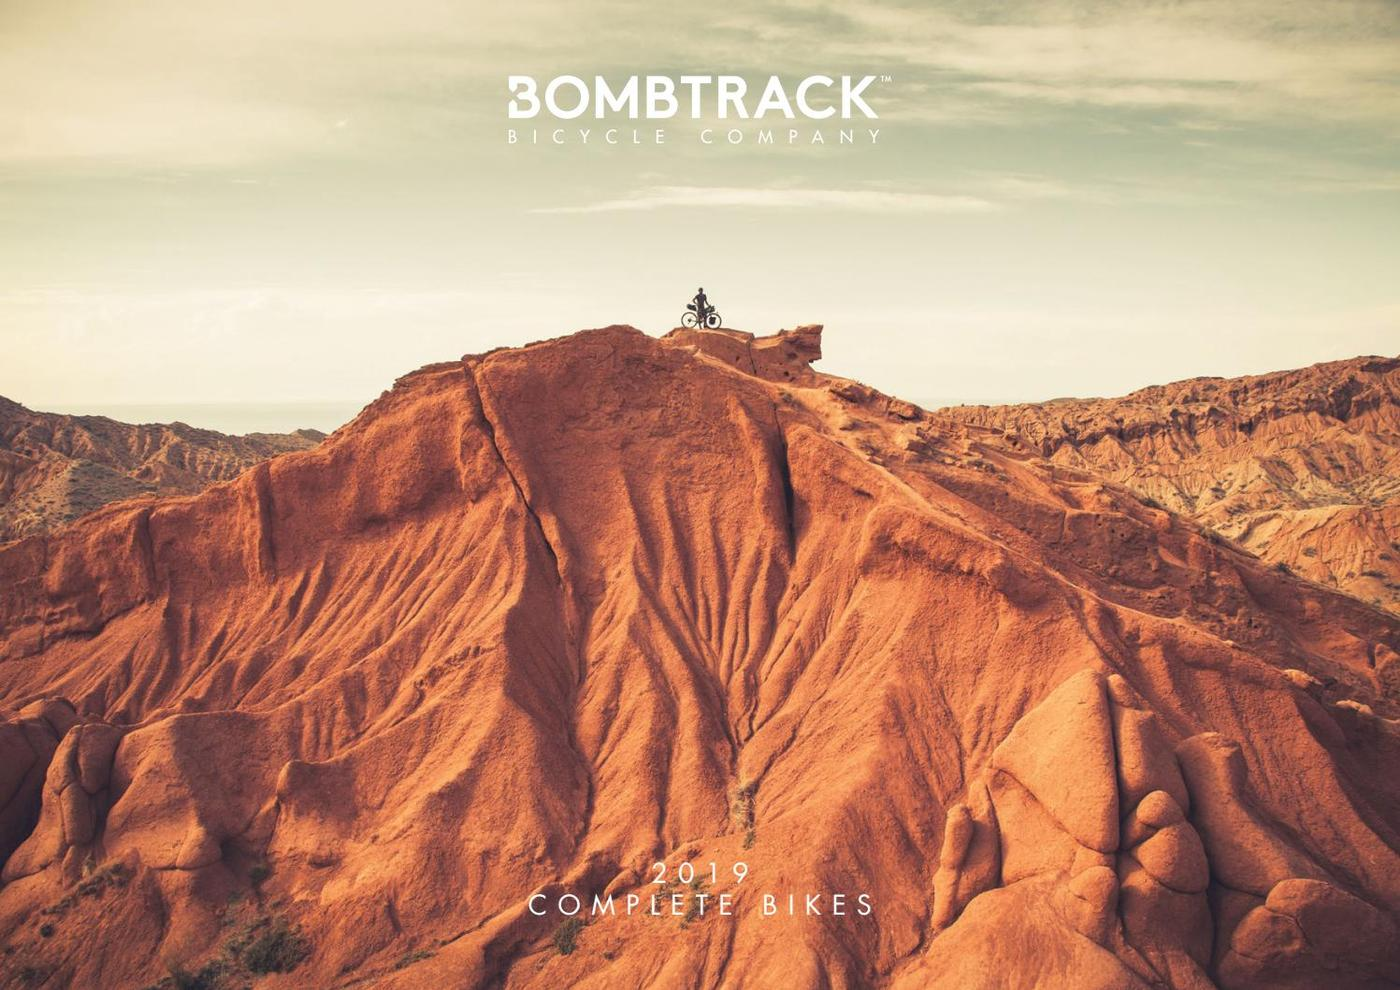 Check out the Latest Bikes from Bombtrack